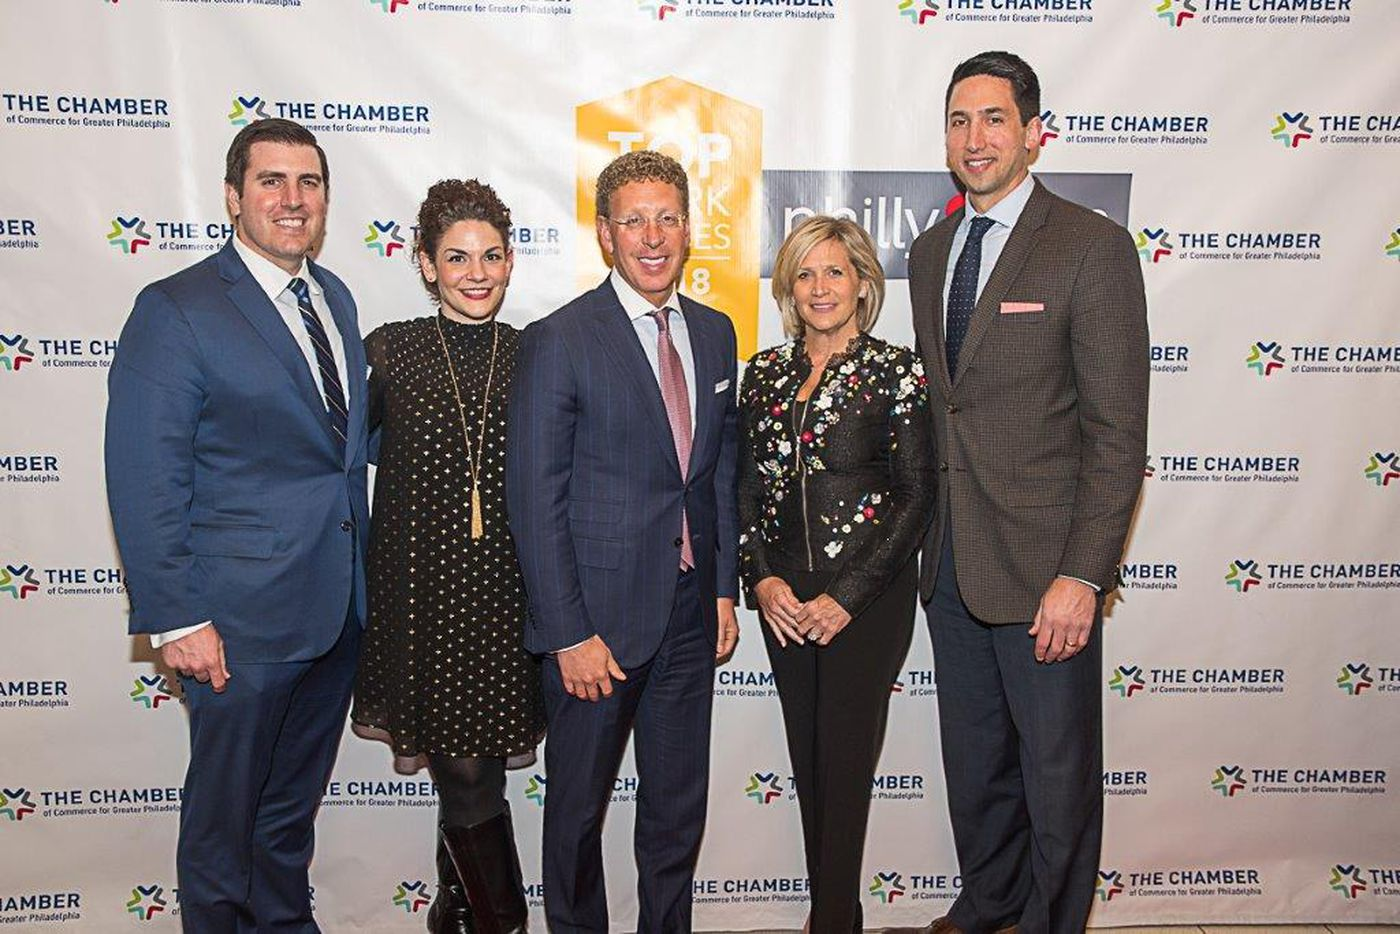 Nominations are open for 2019 Top Workplaces